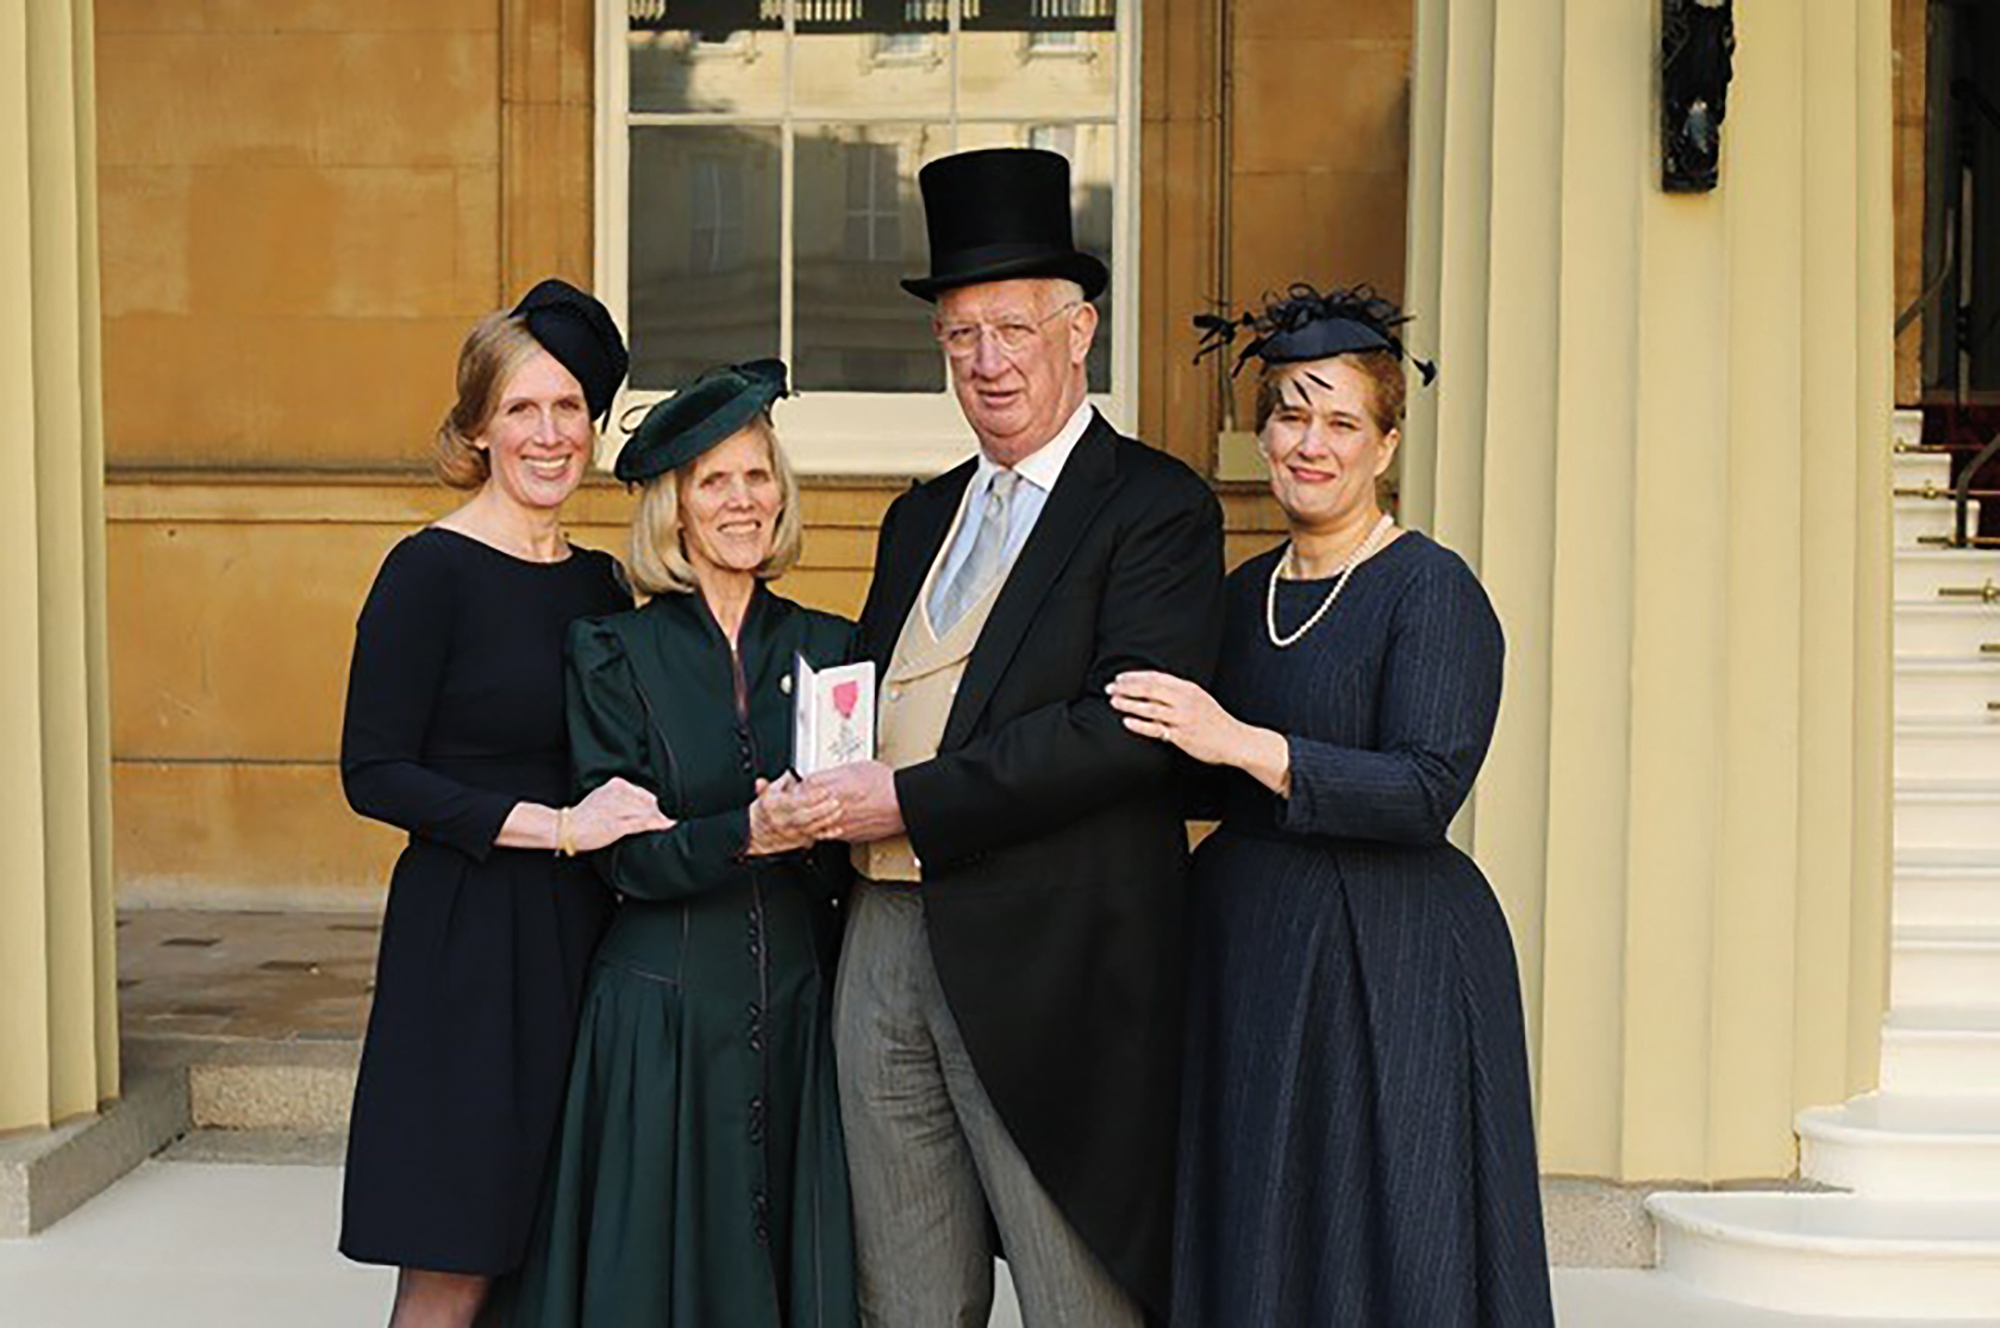 Laura Hildesley Bartsch '86 (l.) at Buckingham Palace, where her father, C. Hugh Hildesley, P'86, GP'14,'17, was invested as a Member of the Order of the British Empire by Prince William.